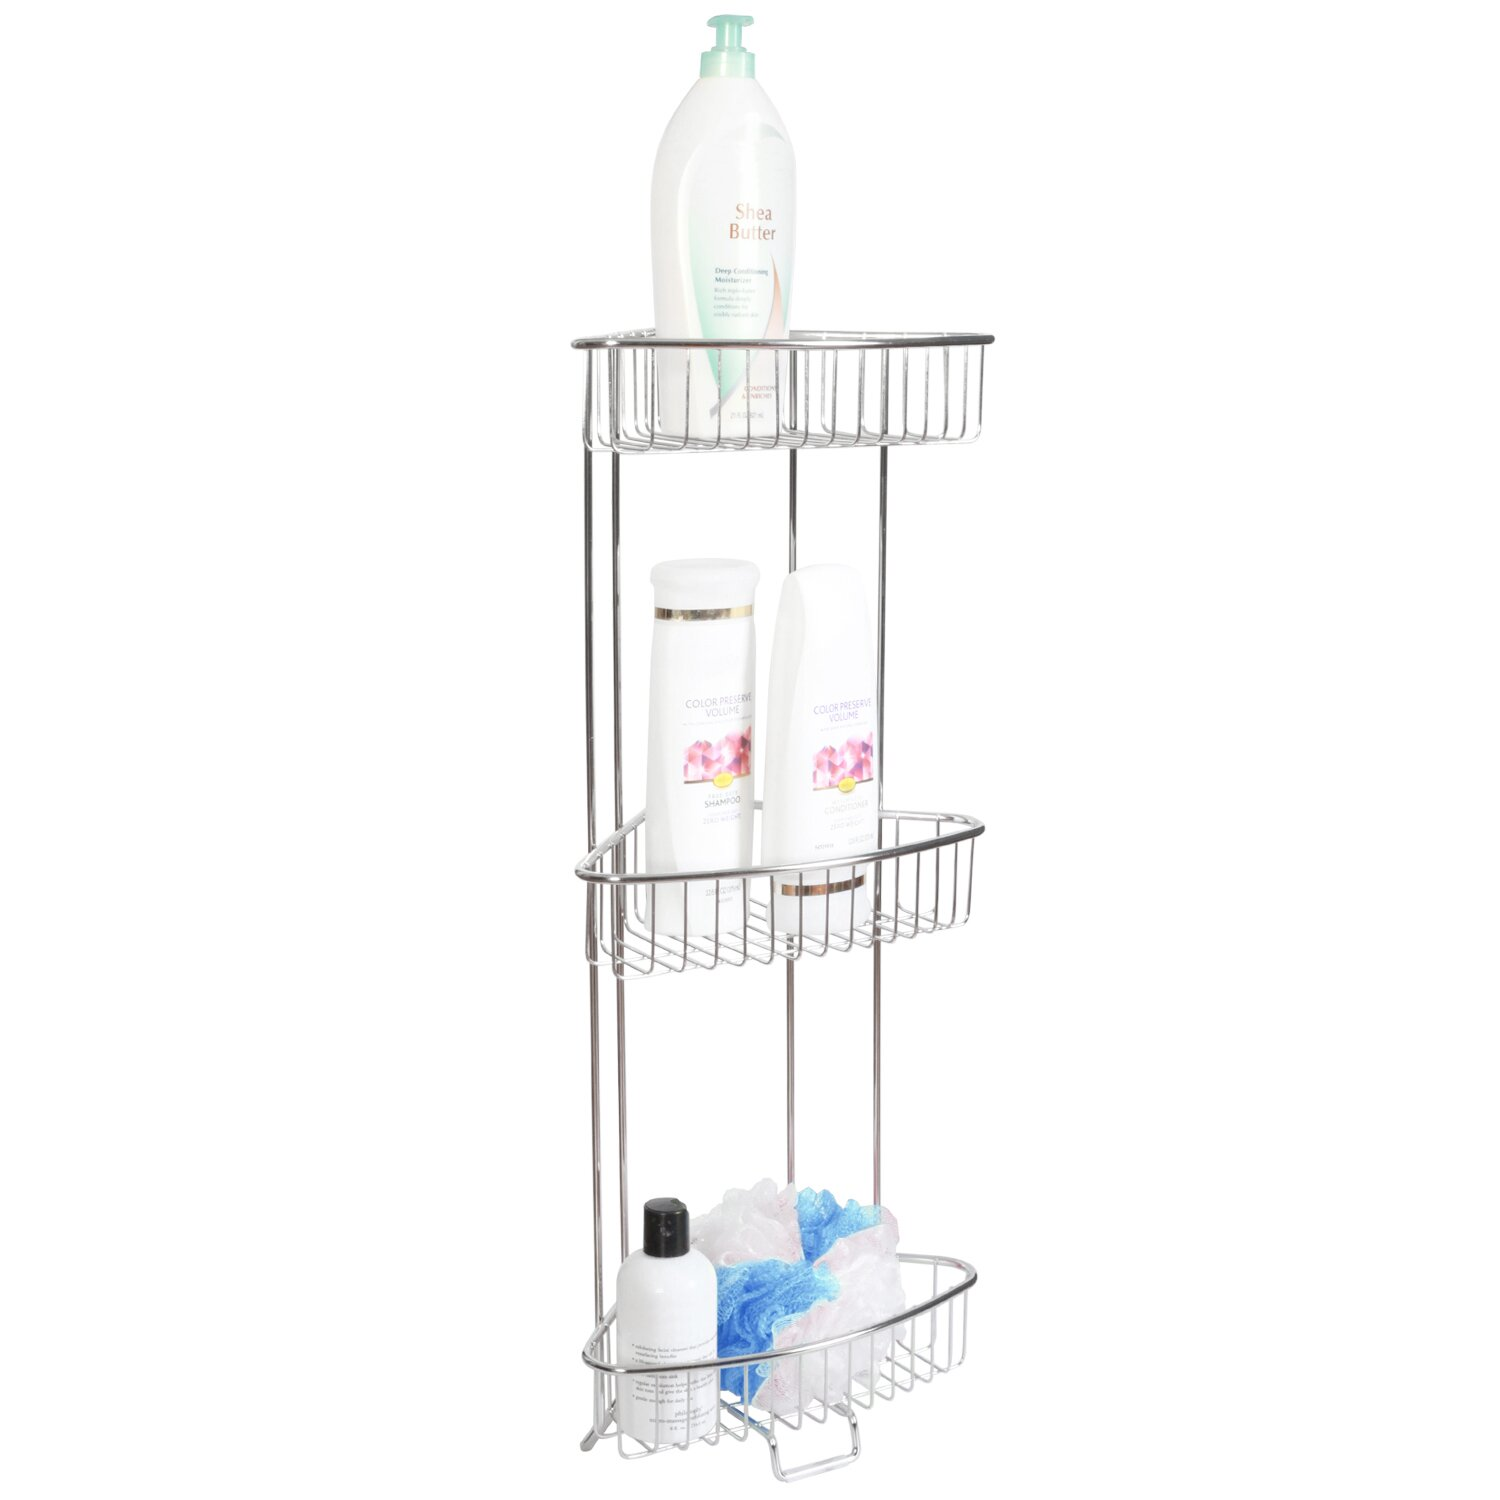 toilet tree products free standing shower caddy reviews